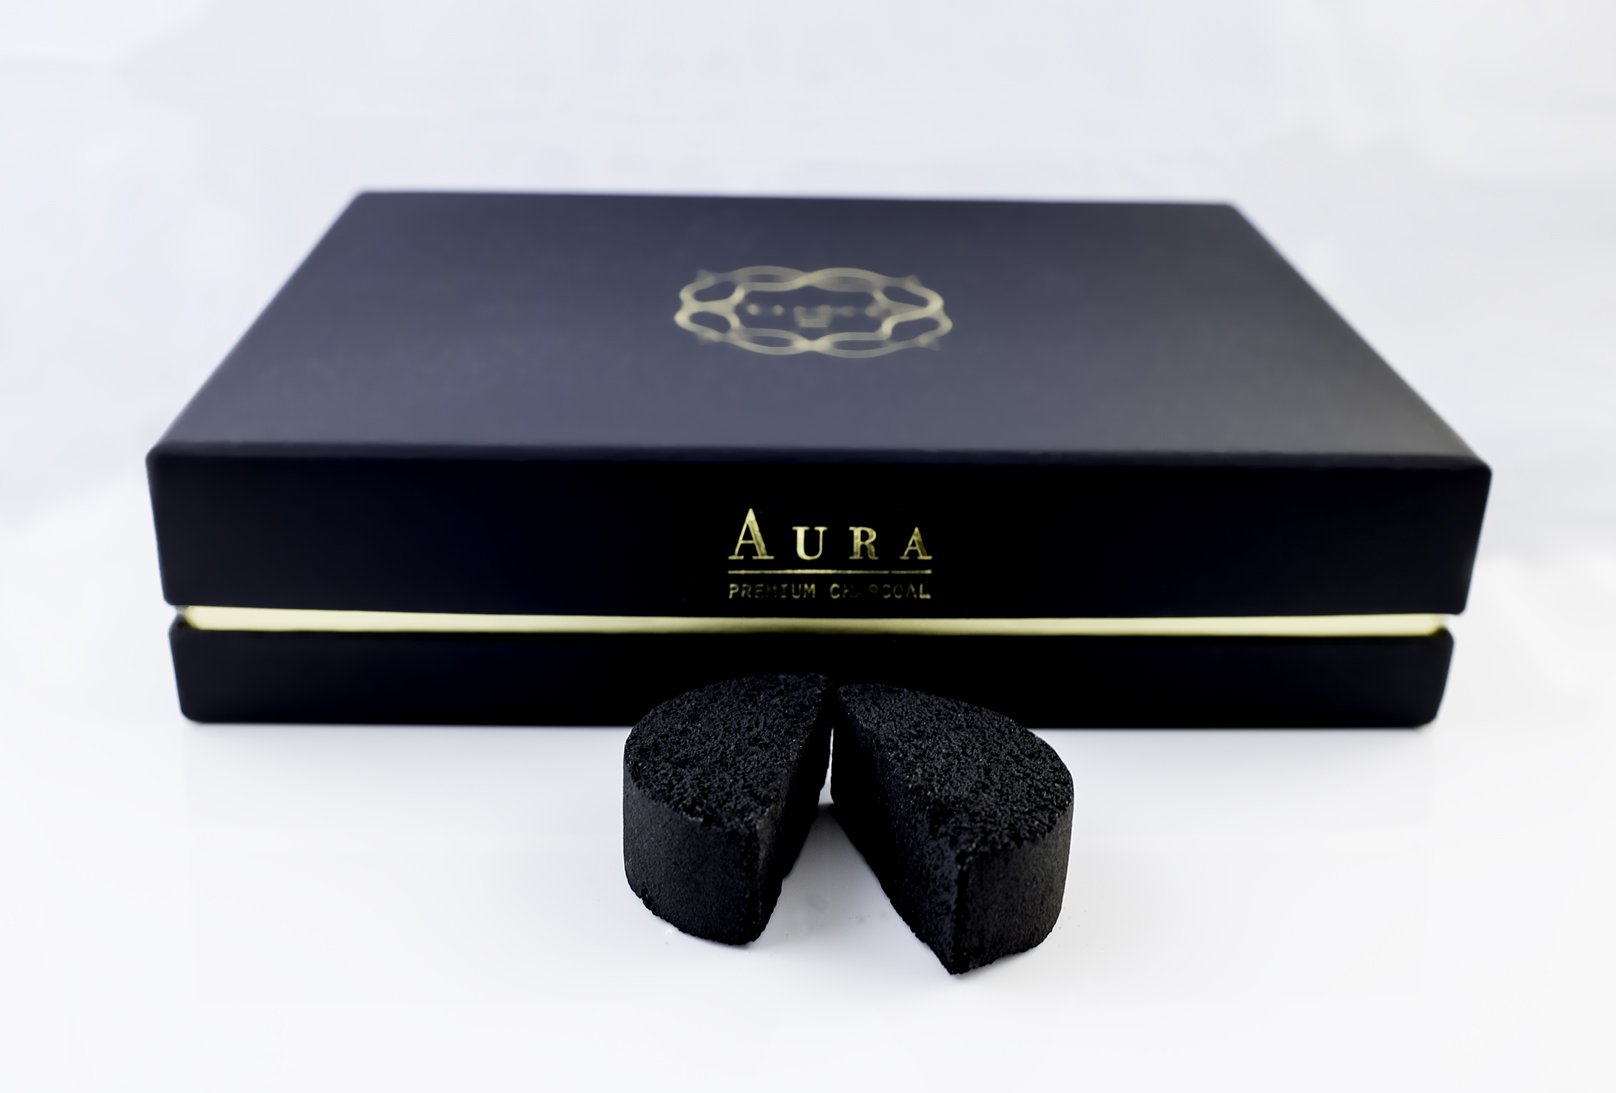 Kaloud Aura Premium Coconut Charcoal 48 Pieces For Clean And Smooth Hookah Sessions Fits Perfectly With Kaloud Lotus I+